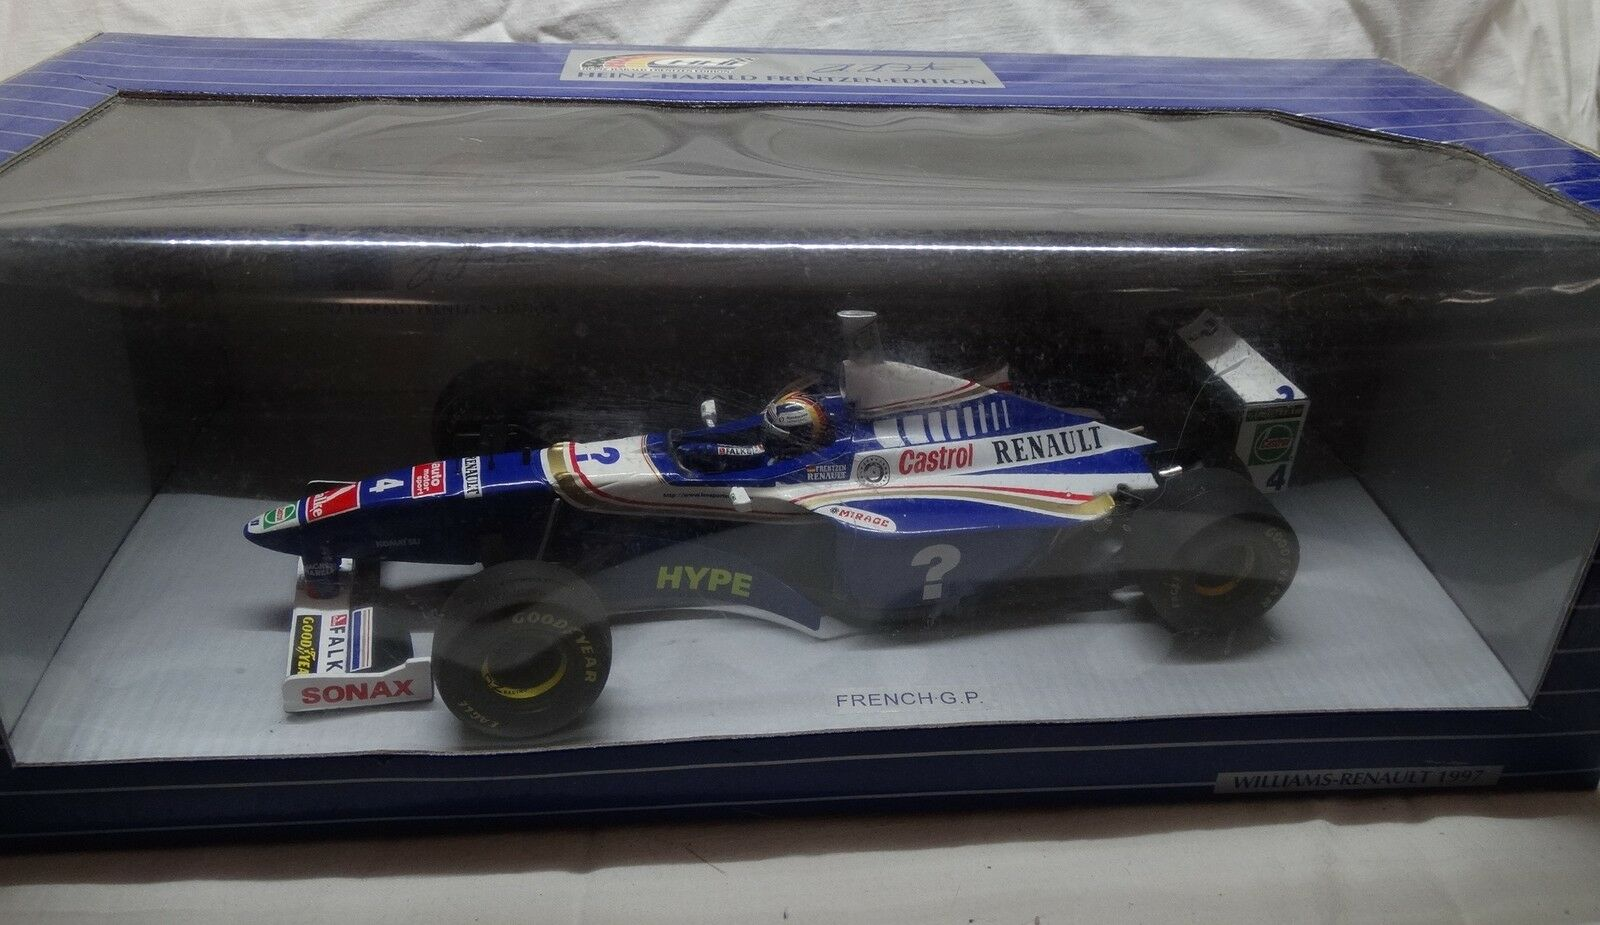 WILLIAMS RENAULT F1 1997 French GP H. FRENTZEN BUILT 1 1 1 18  rare special edition aadf57